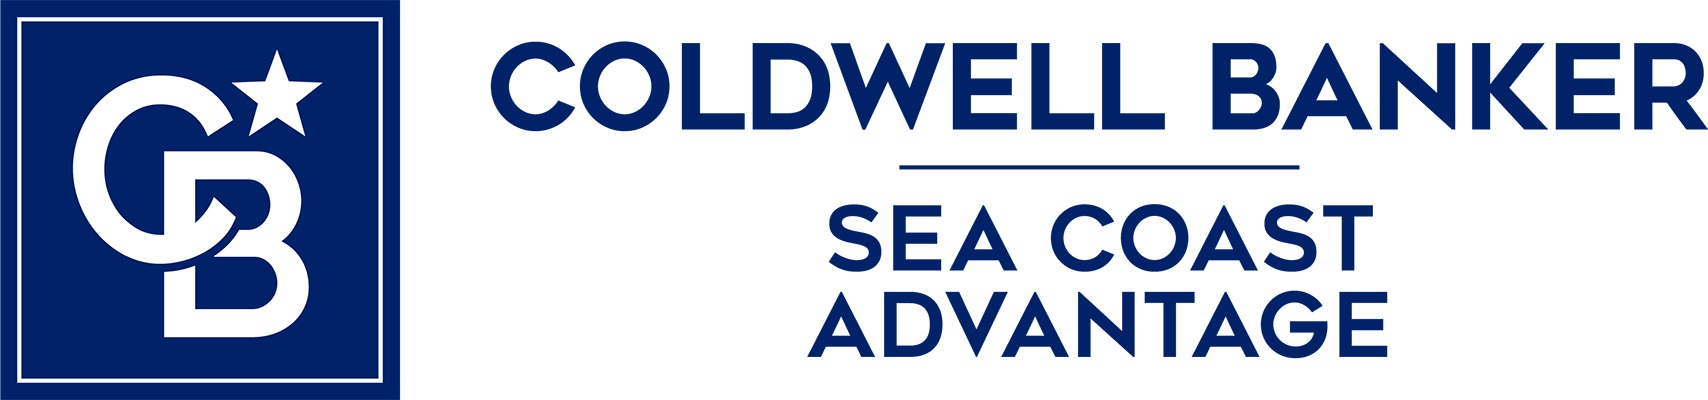 Daryl Bundy - Coldwell Banker Sea Coast Advantage Realty Logo